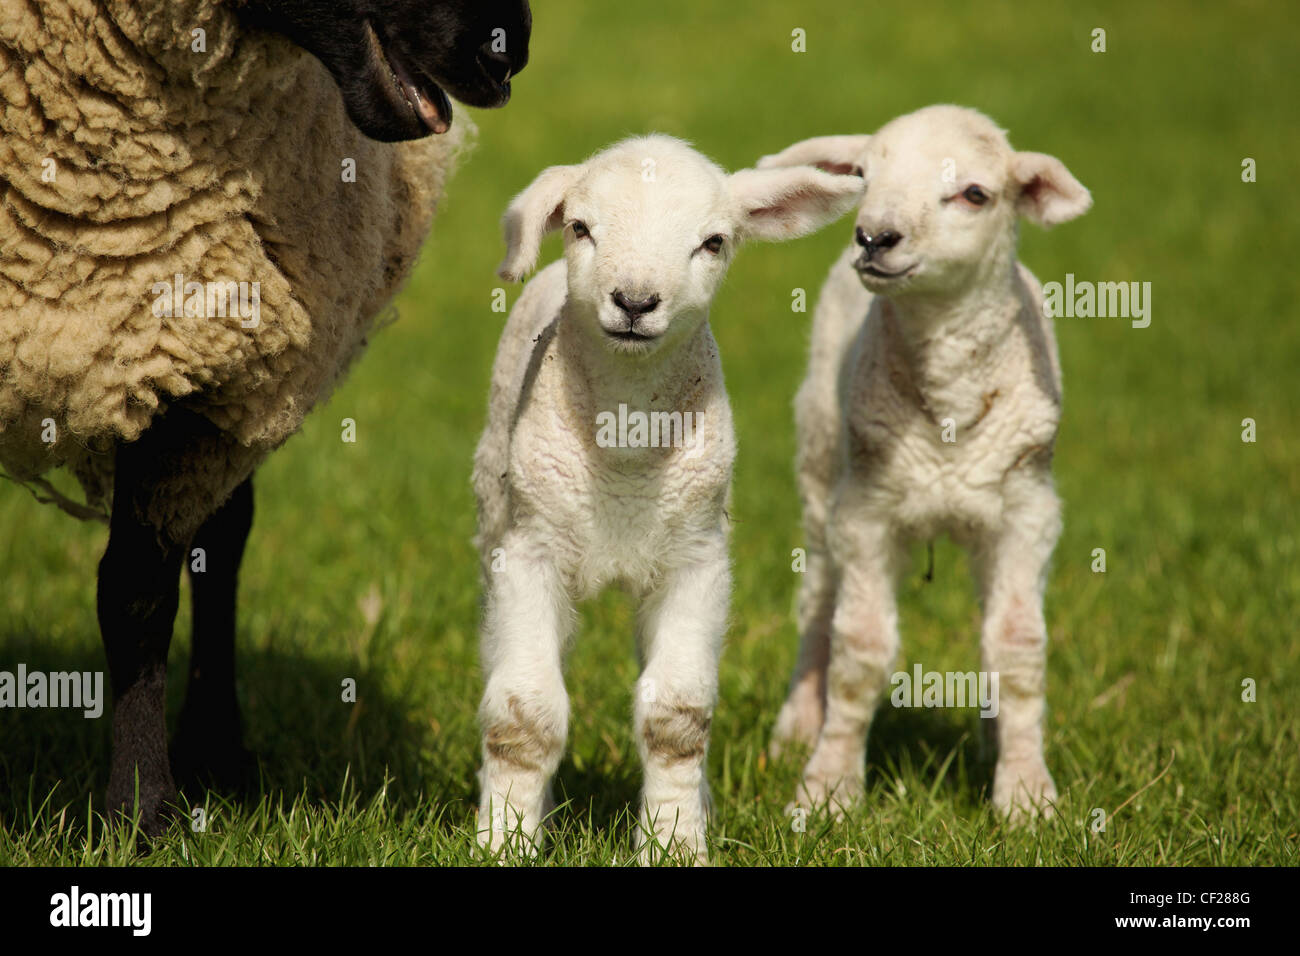 A Lamb With Two Sheep; Dublin Ireland - Stock Image